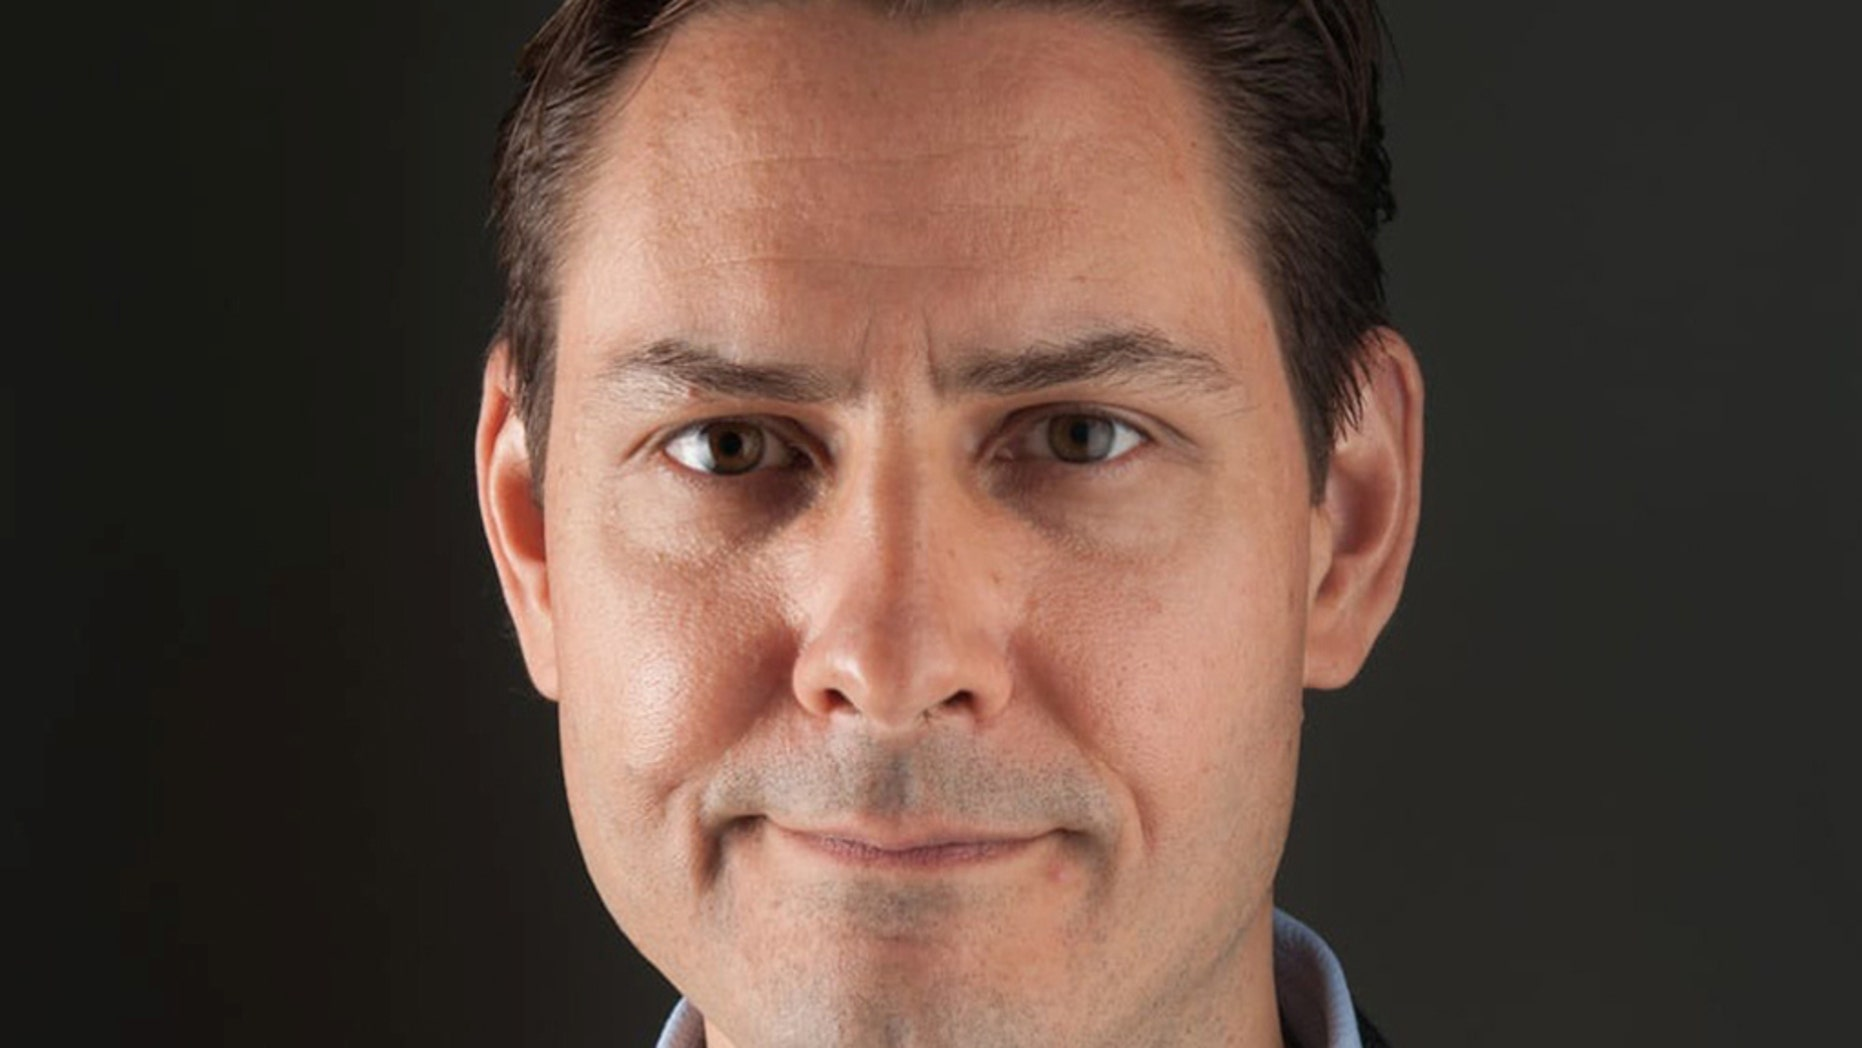 Michael Kovrig, an employee with the International Crisis Group and former Canadian diplomat, has been arrested in China.